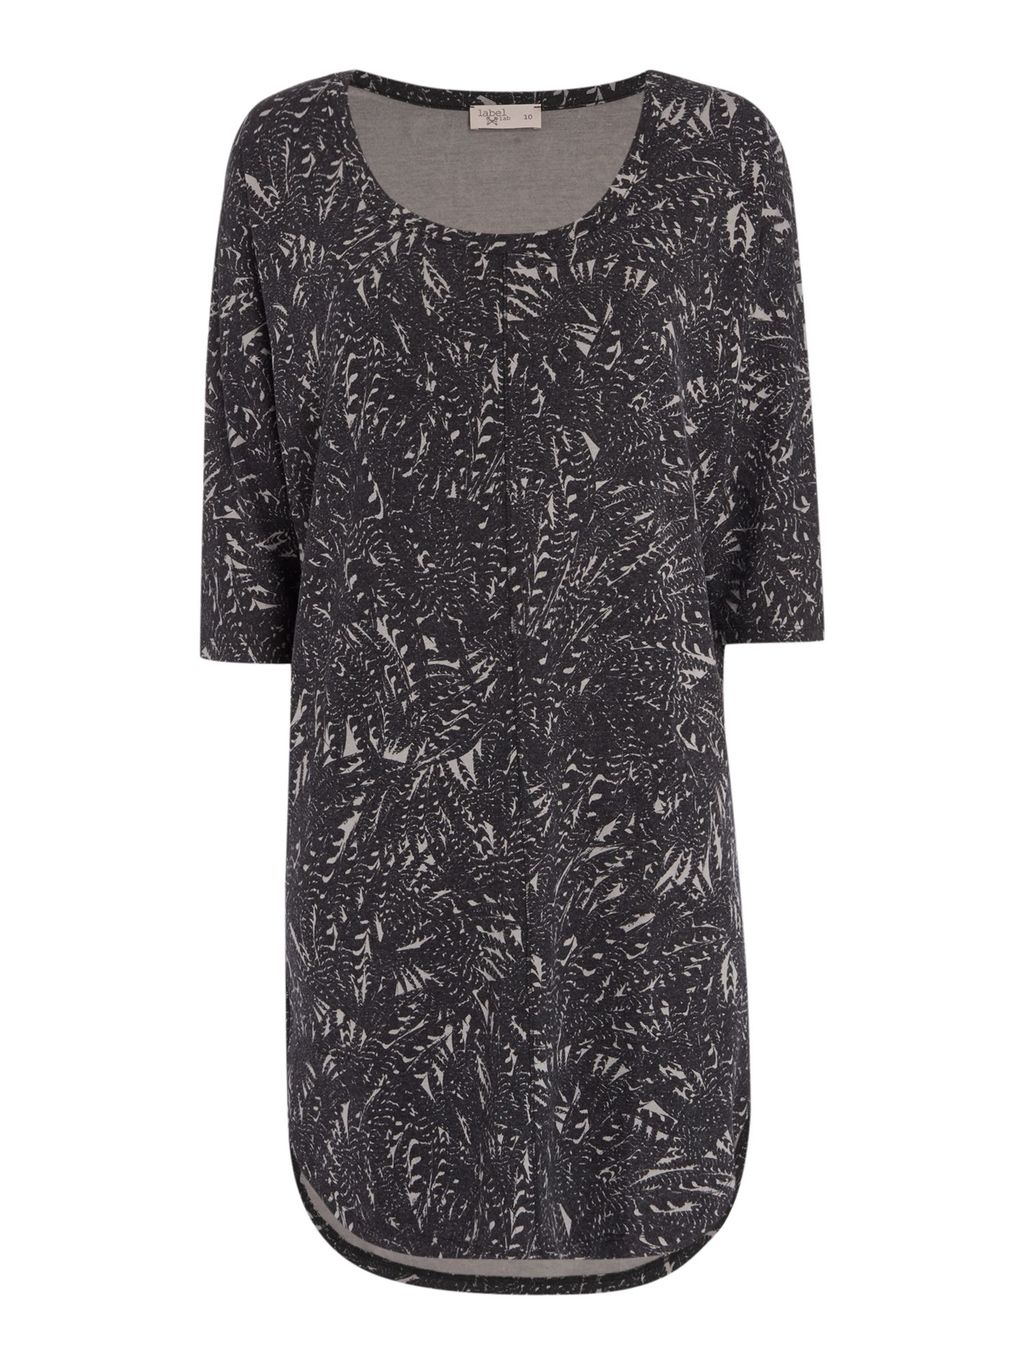 Feather Print Supersoft Cocoon Dress, Grey - style: tunic; length: mid thigh; predominant colour: charcoal; secondary colour: light grey; occasions: casual; fit: straight cut; neckline: scoop; fibres: cotton - stretch; sleeve length: 3/4 length; sleeve style: standard; pattern type: fabric; pattern size: standard; pattern: patterned/print; texture group: jersey - stretchy/drapey; season: s/s 2016; wardrobe: highlight